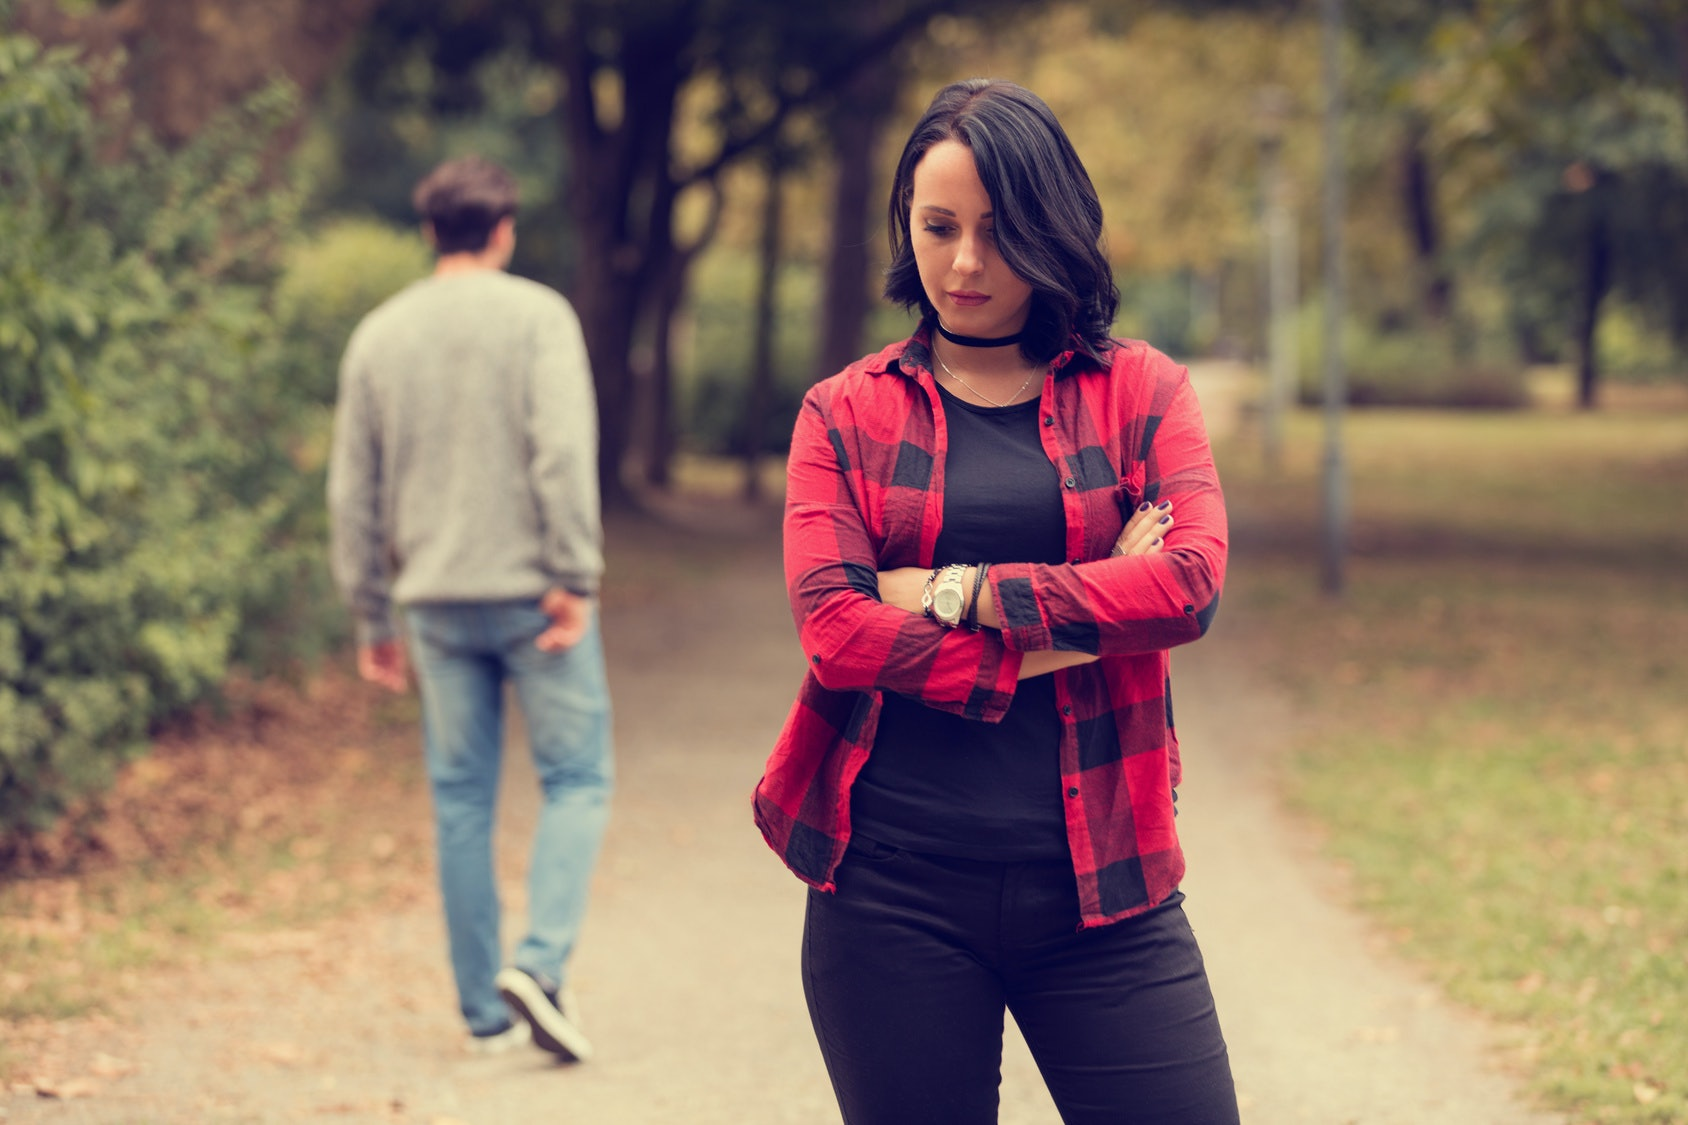 How to get out of an obsessive relationship